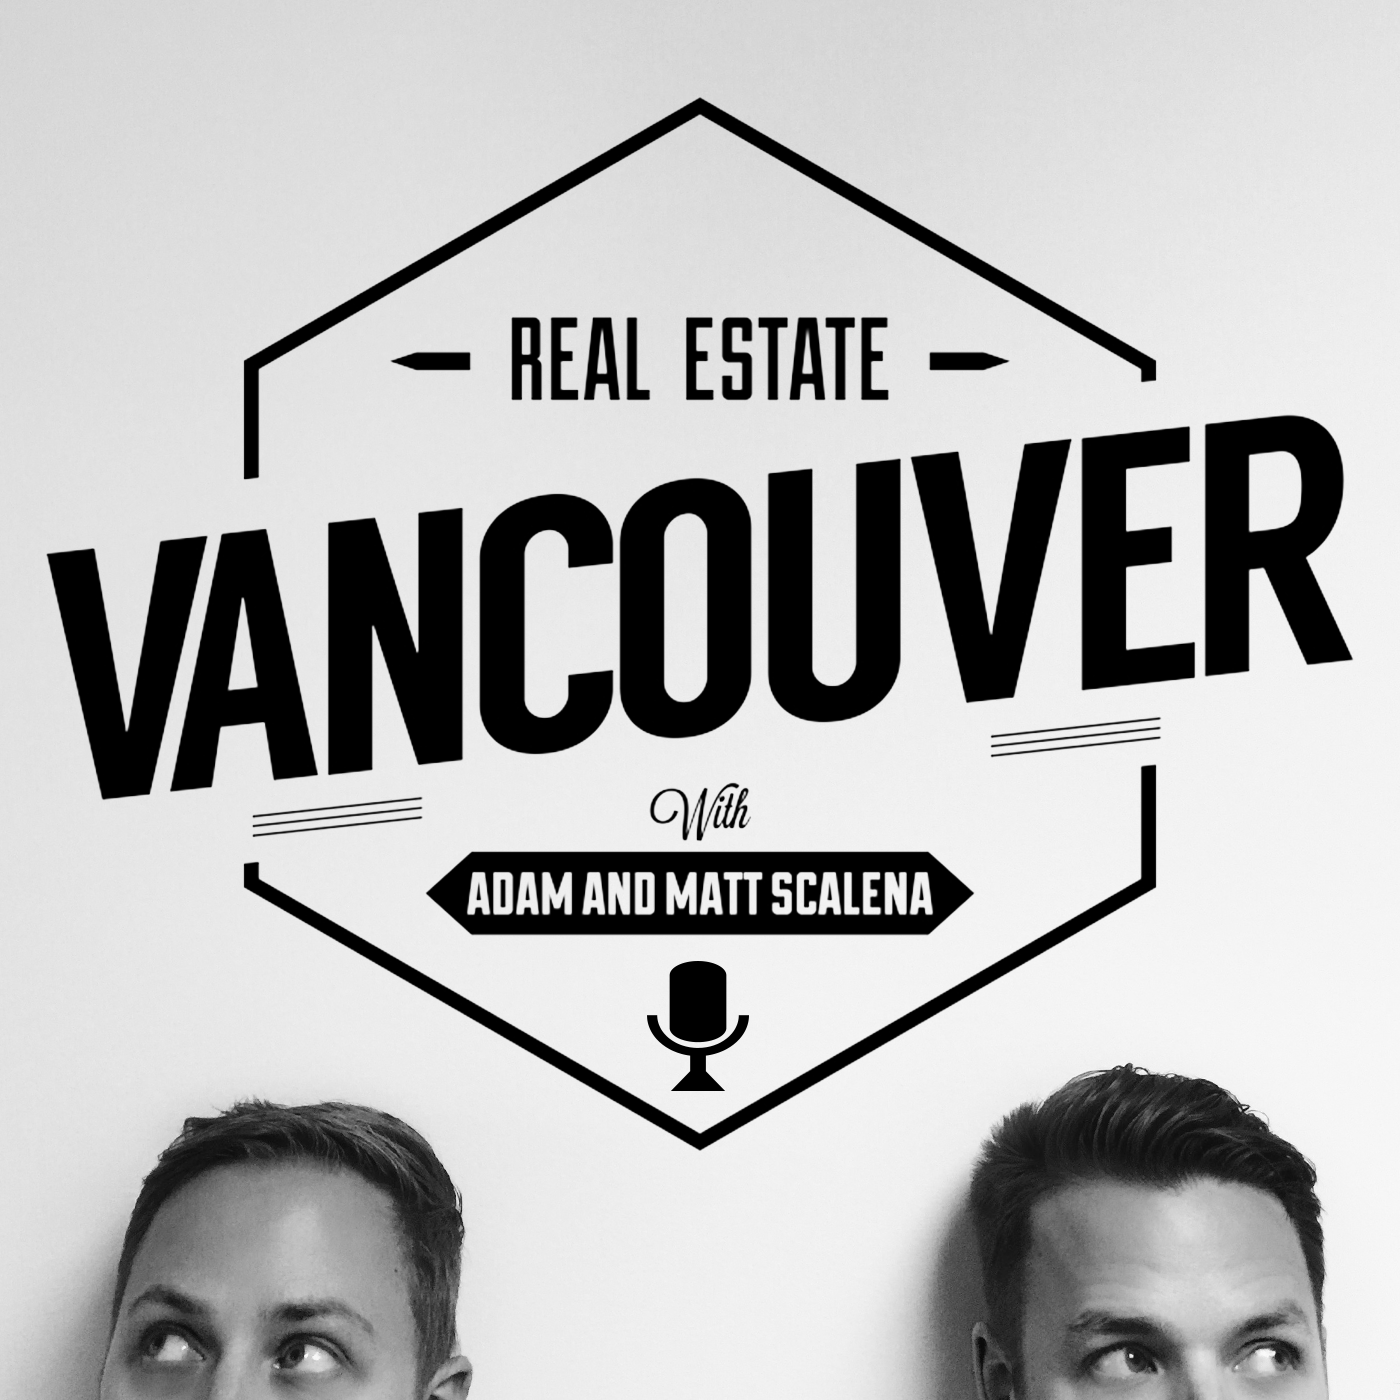 How To Build A Real Estate Empire In Under 10 Years